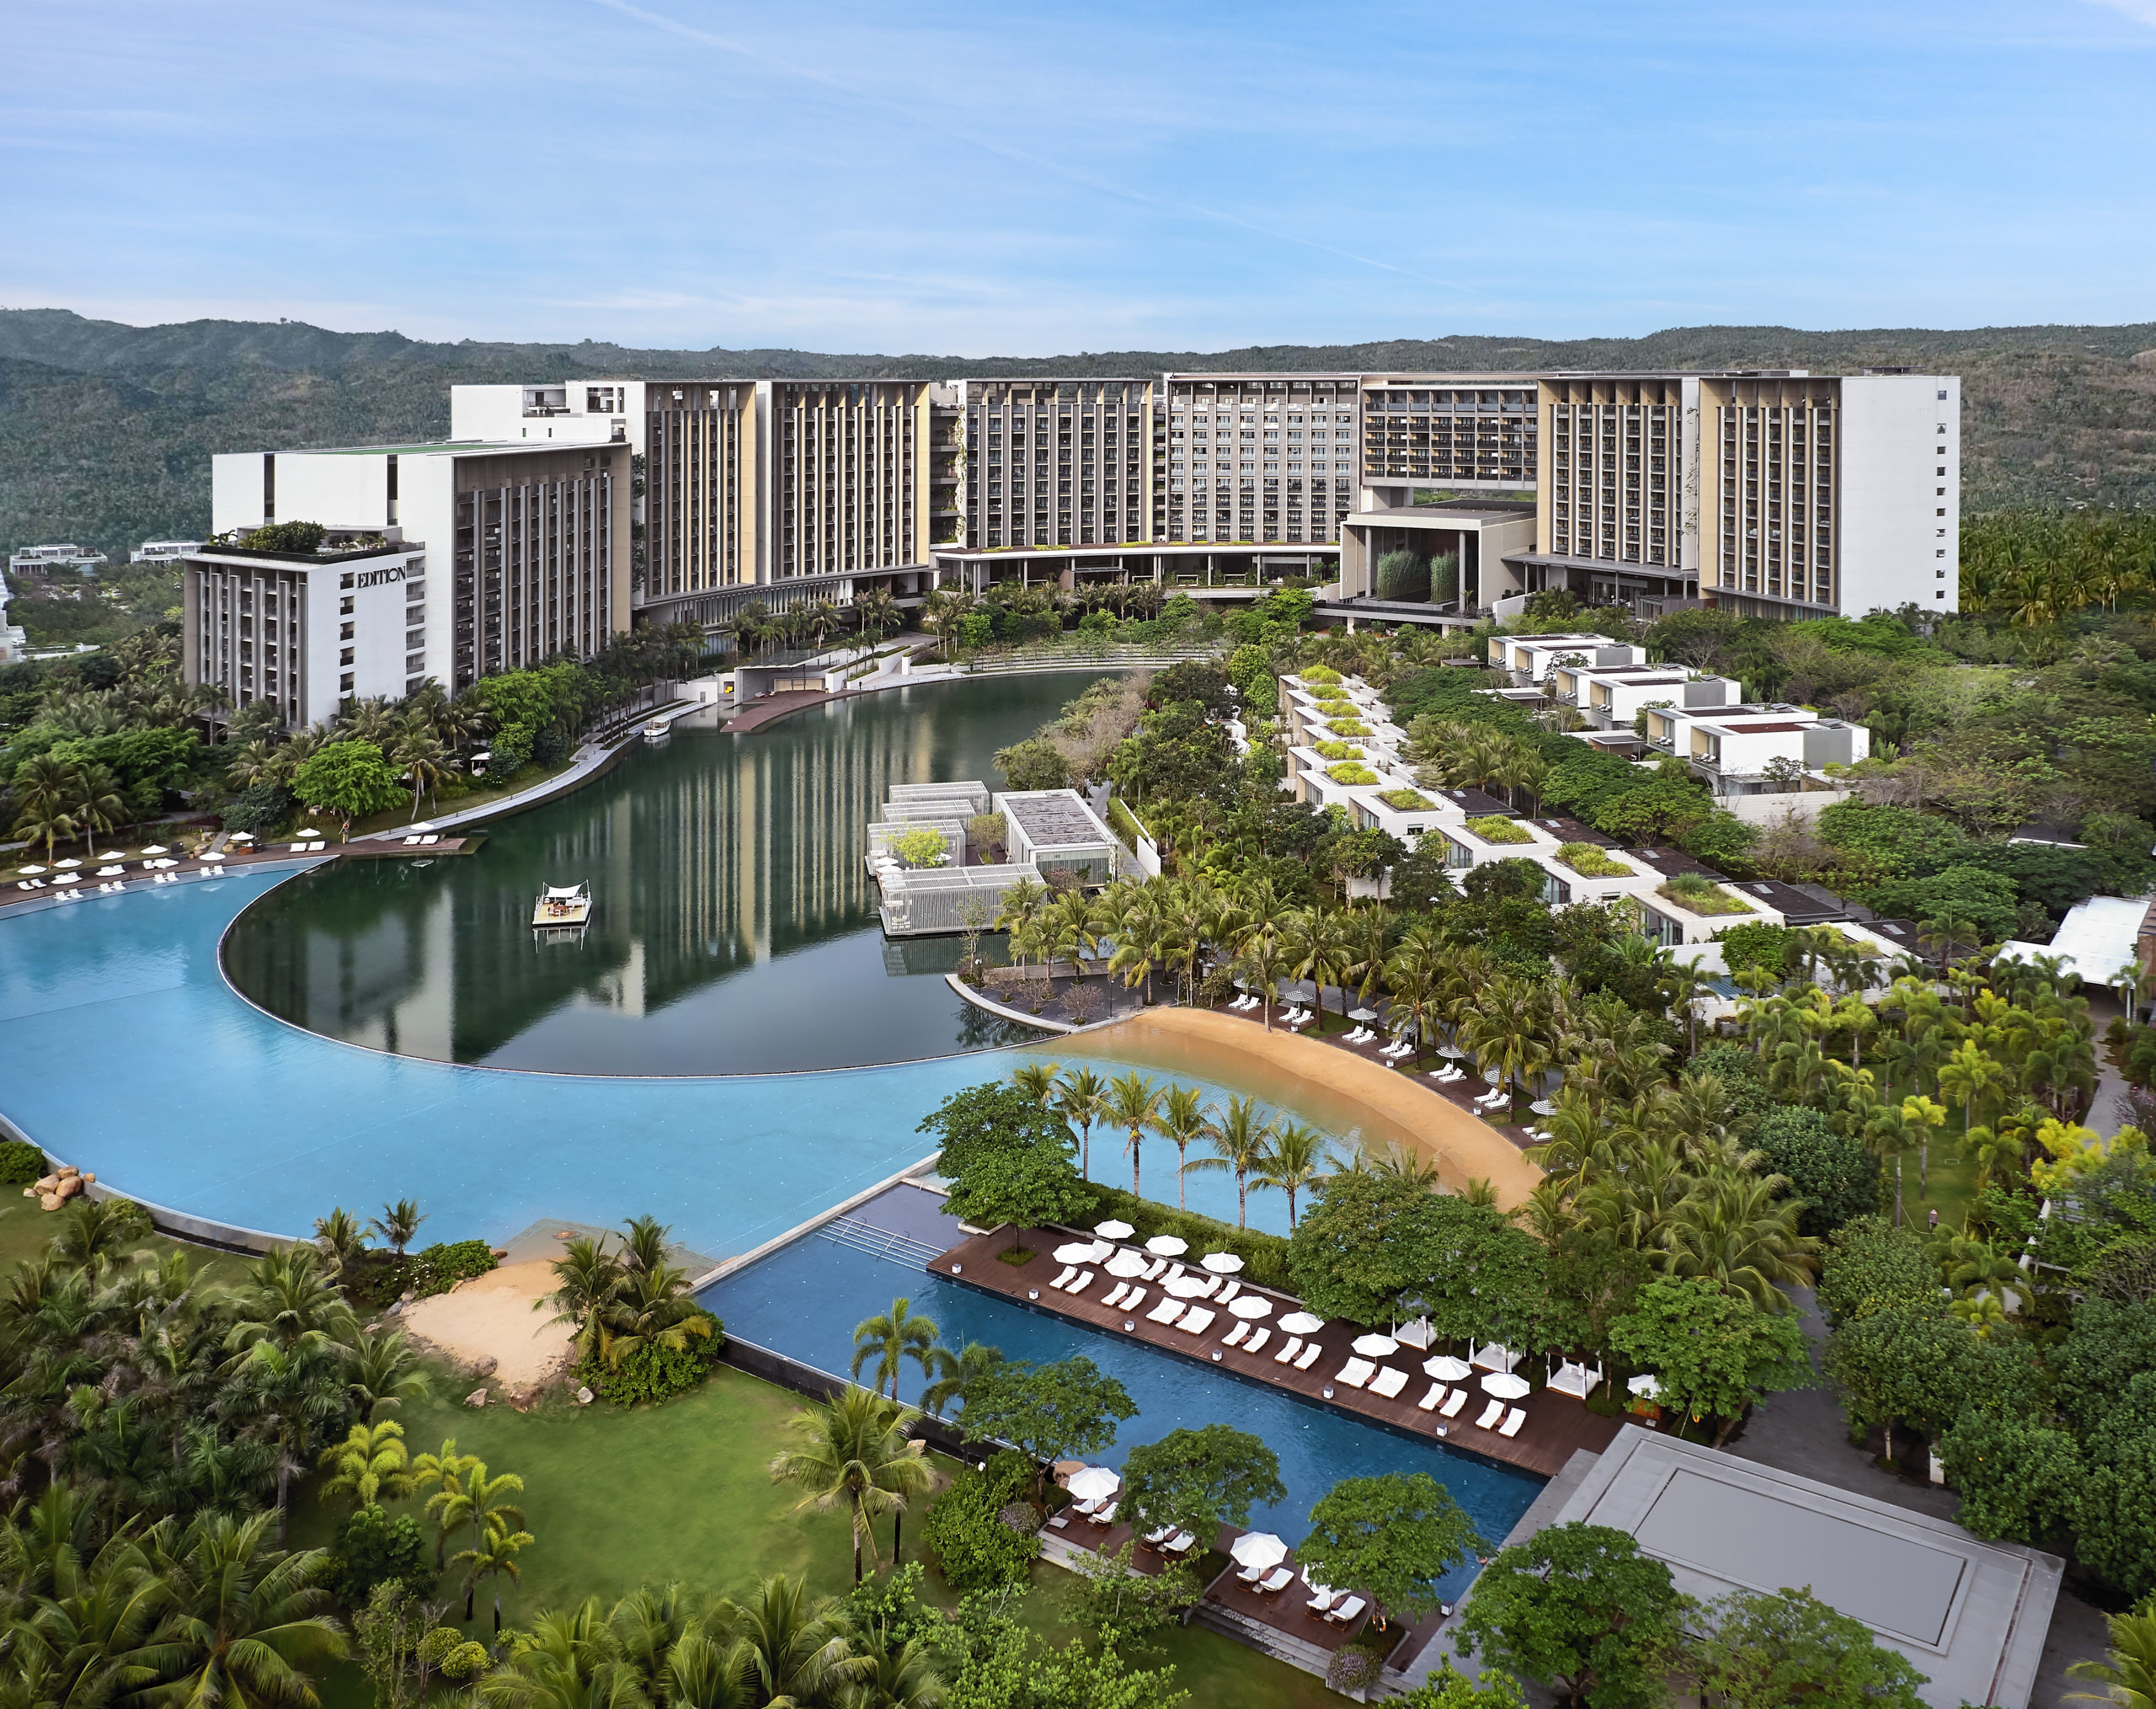 aerial photography of edition hotel in sanya showing blue pool with lounge chairs and hotel in background